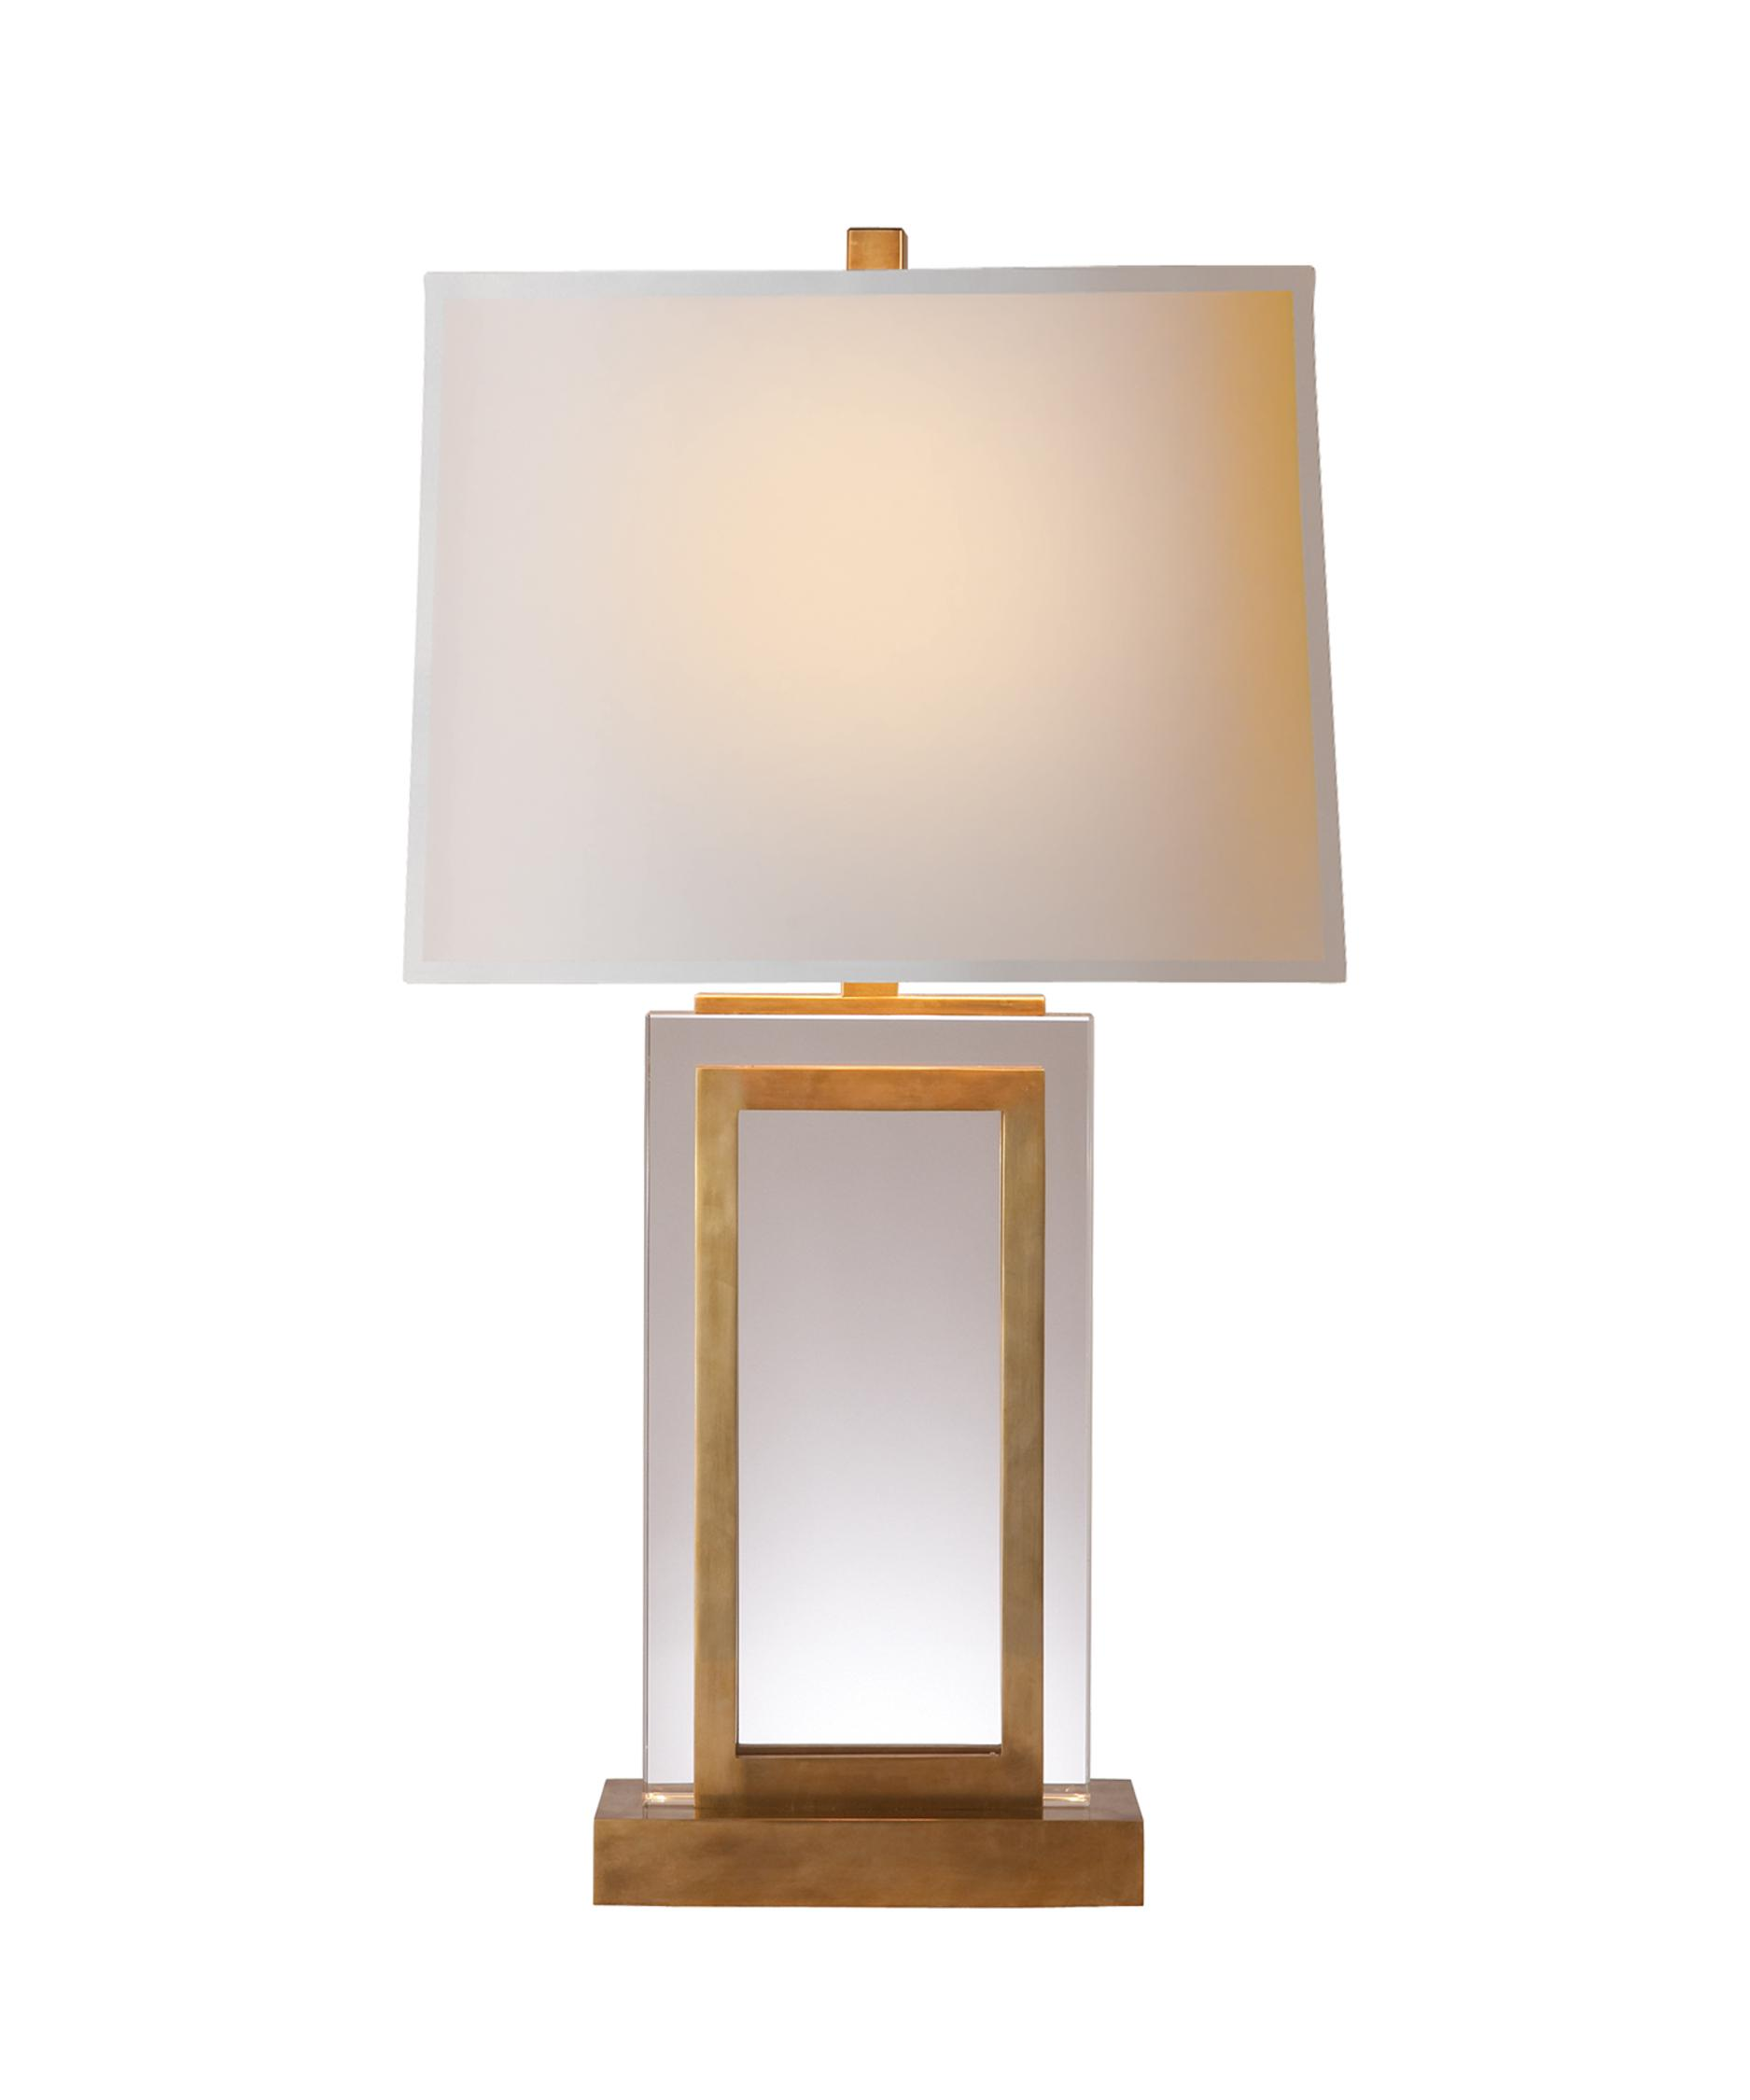 Shown In Antique Burnished Brass Finish And Natural Paper Rectangle Shade